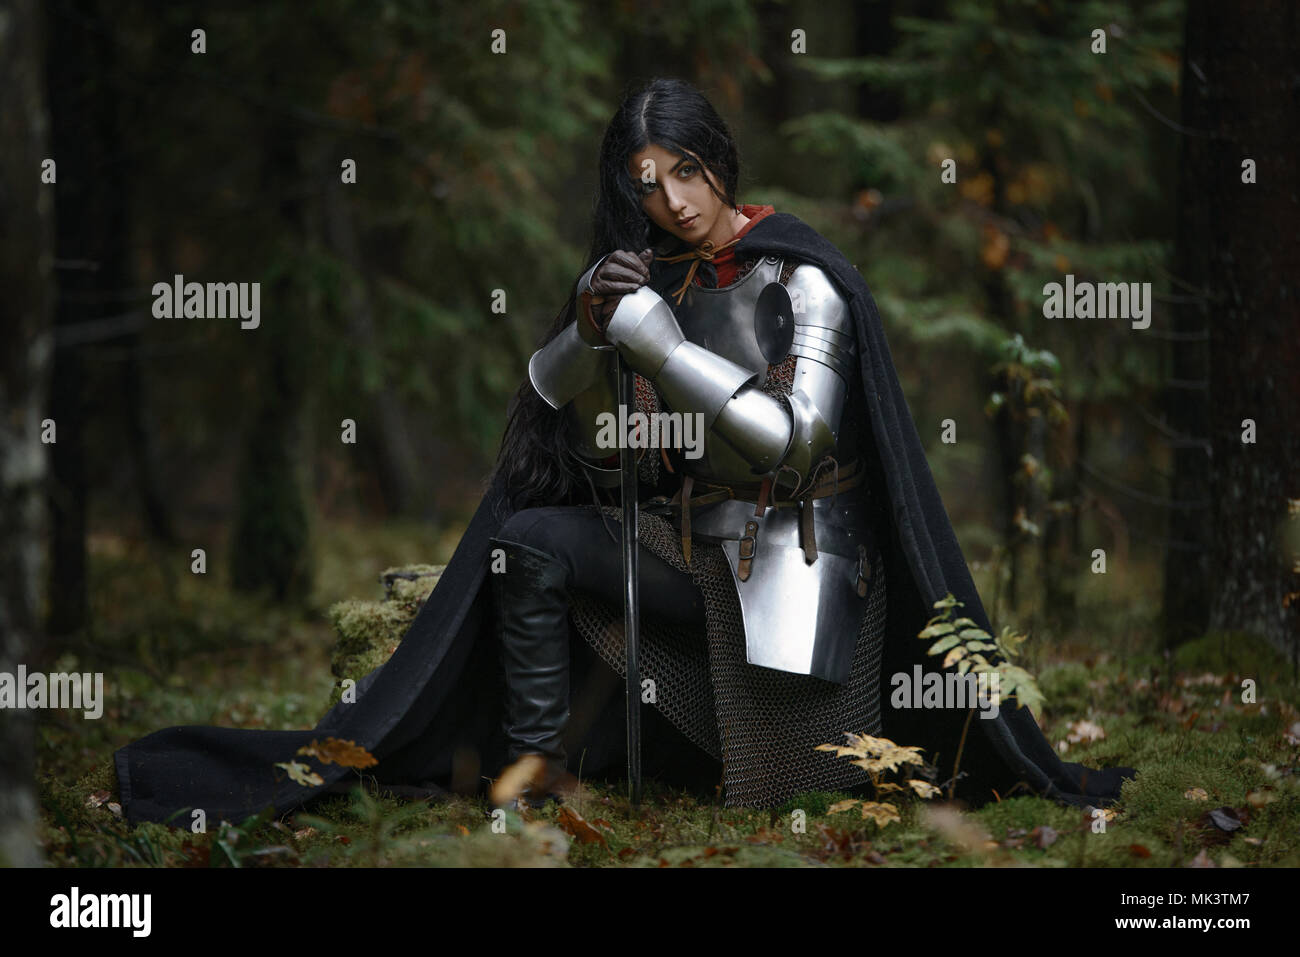 A beautiful warrior girl with a sword wearing chainmail and armor in a mysterious forest Stock Photo